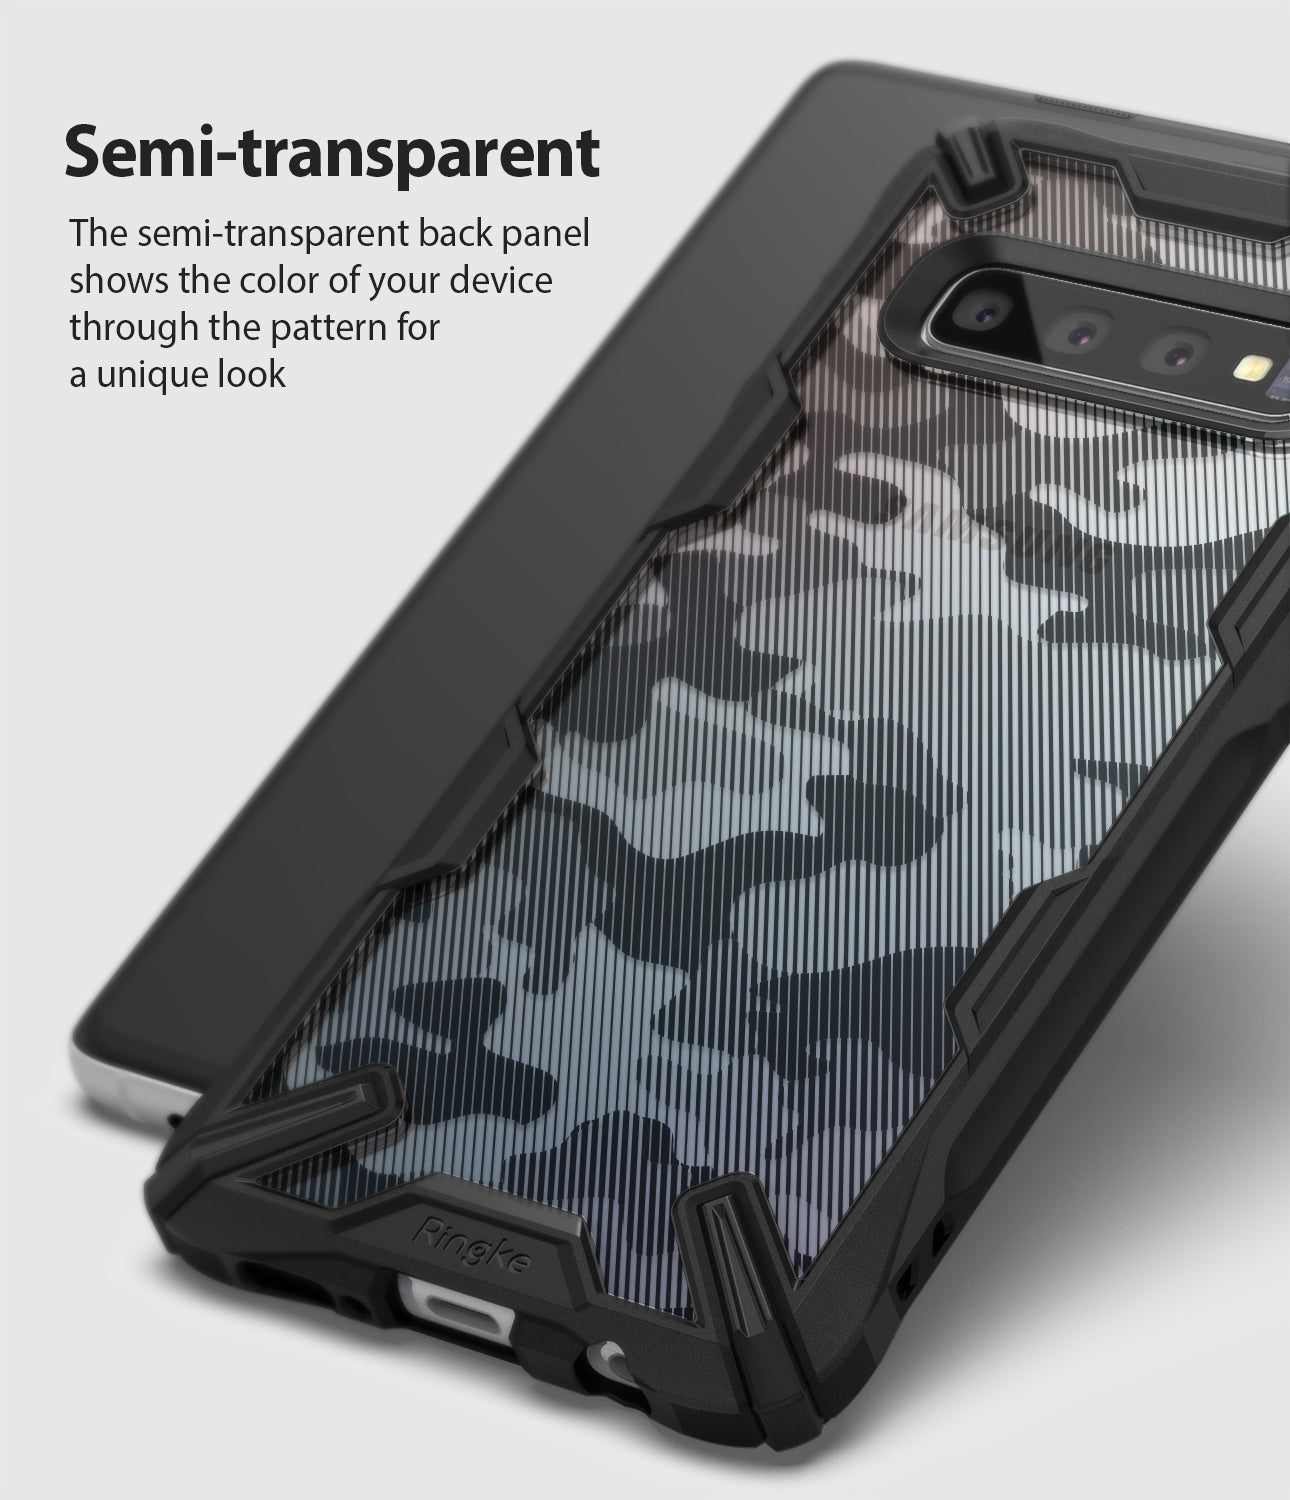 the semi transparent back panel shows the color of your device through the pattern for a unique look